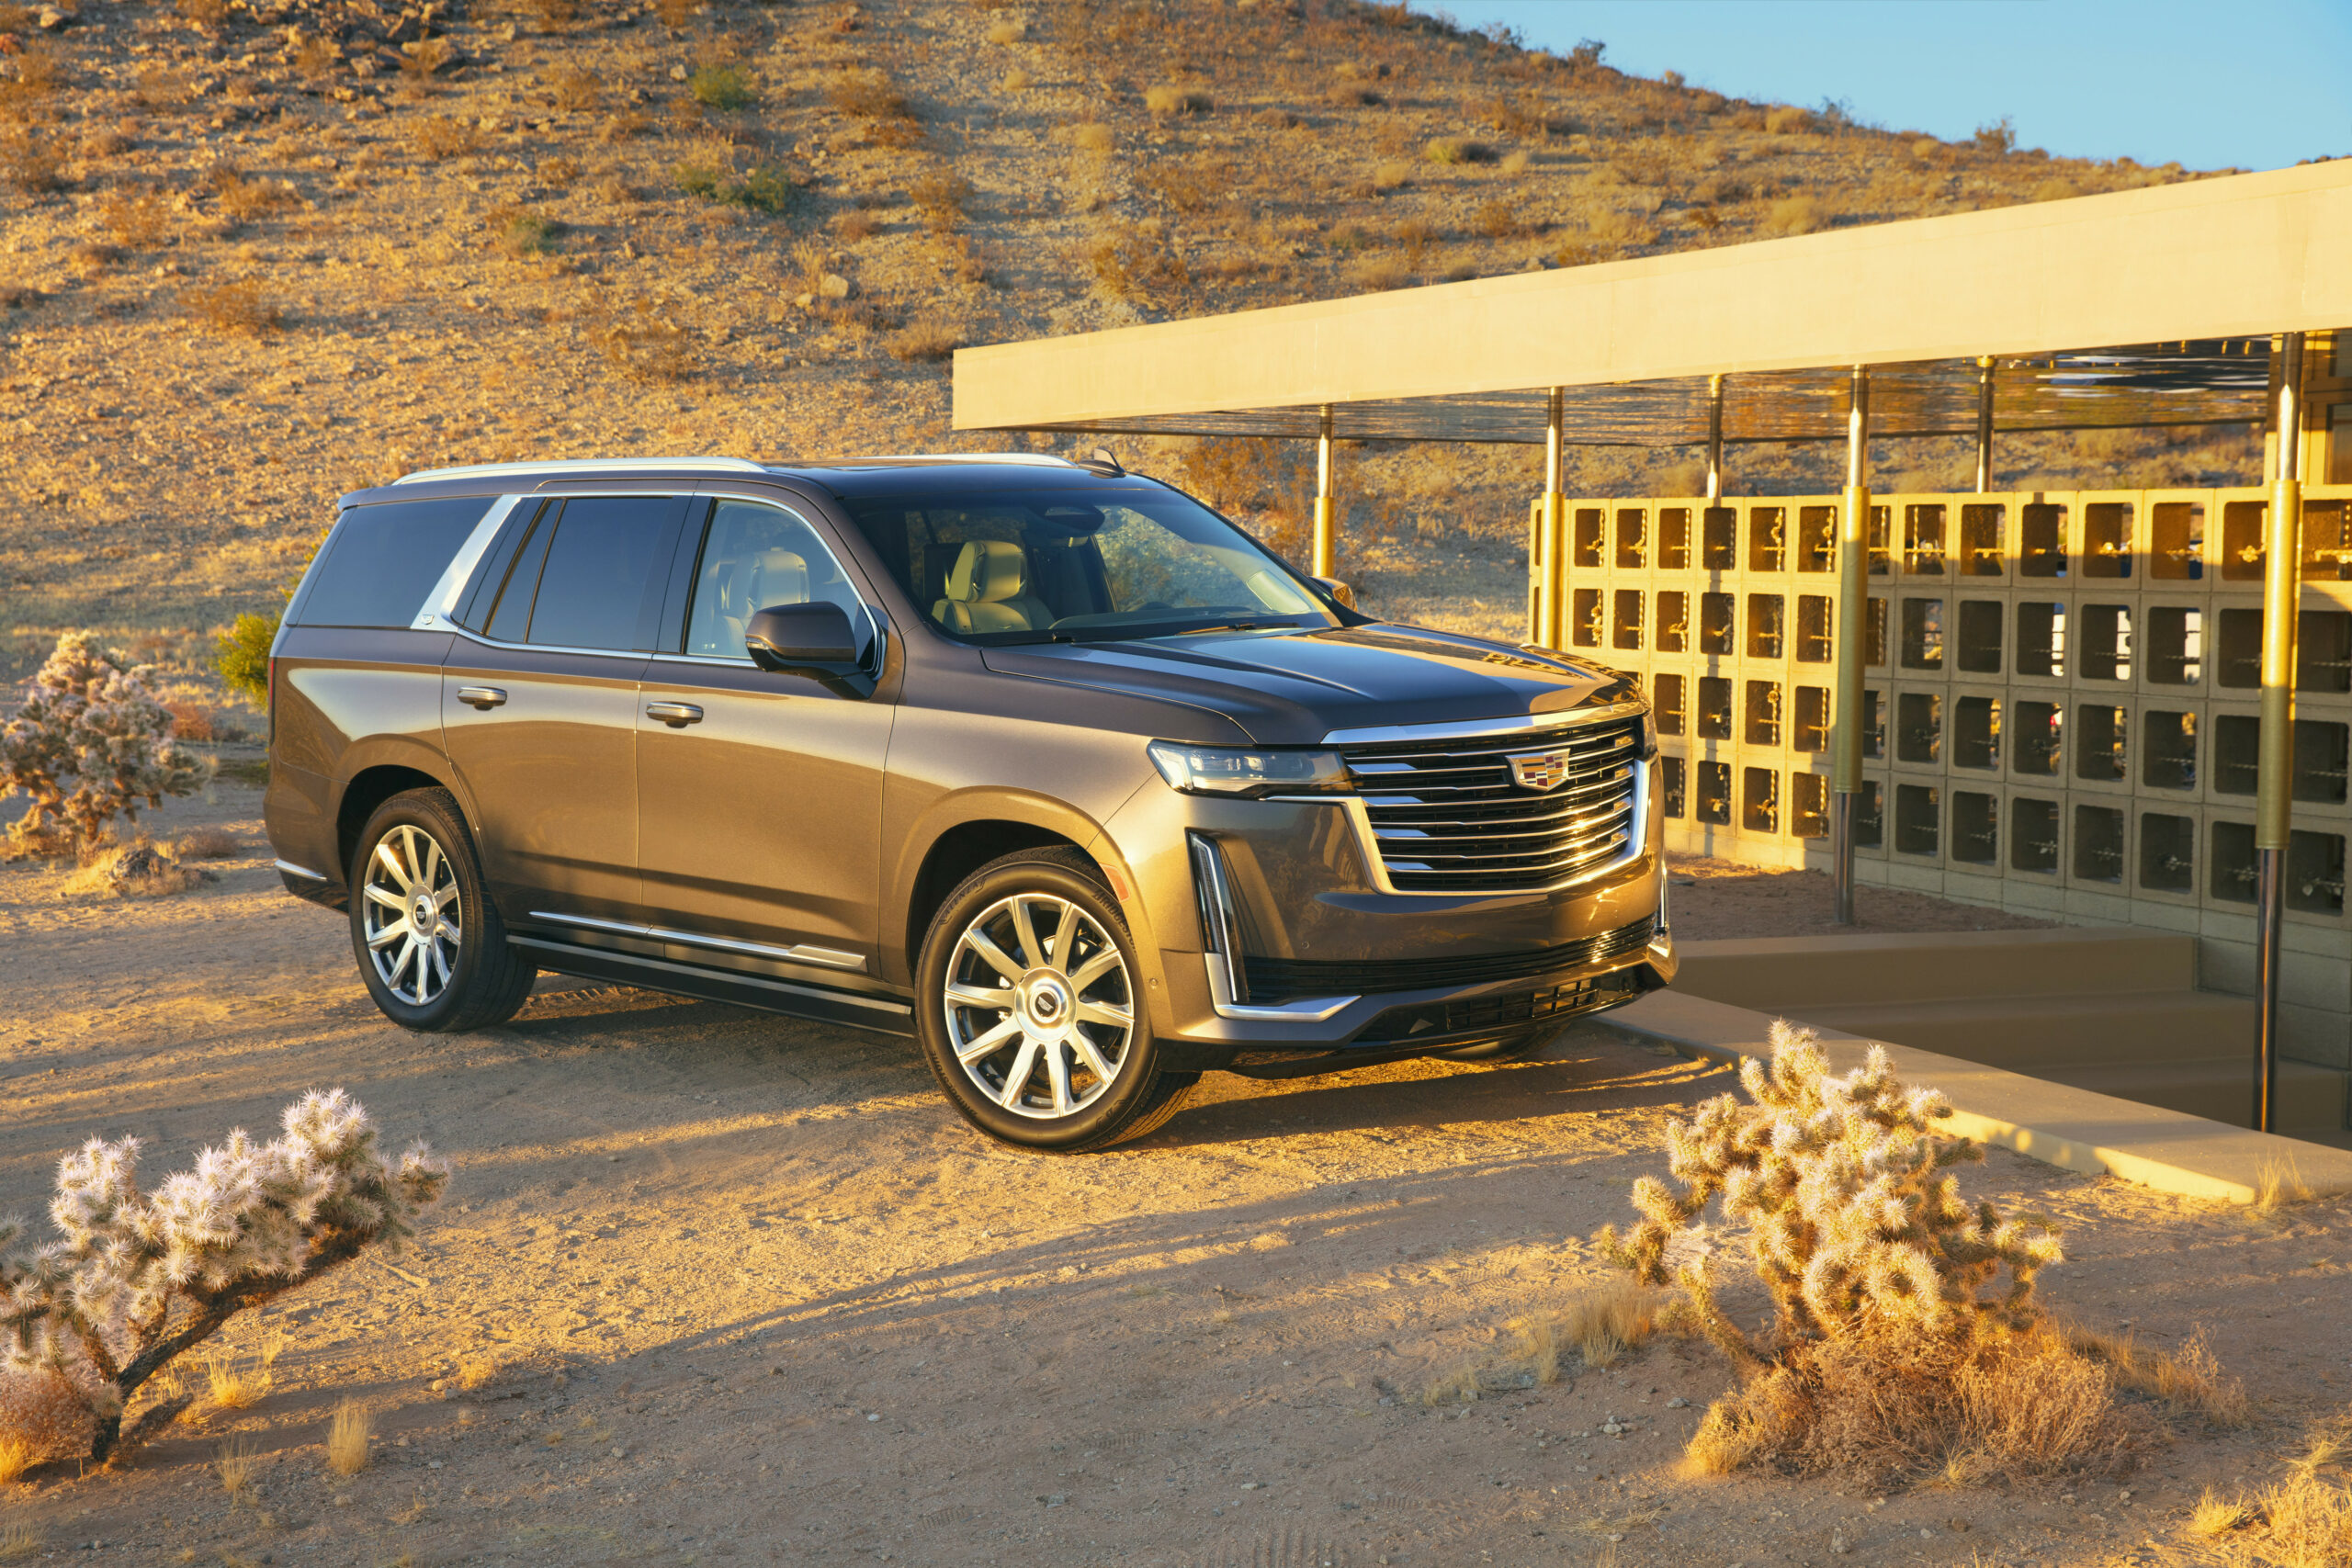 Images Cadillac Escalade 2022 Model